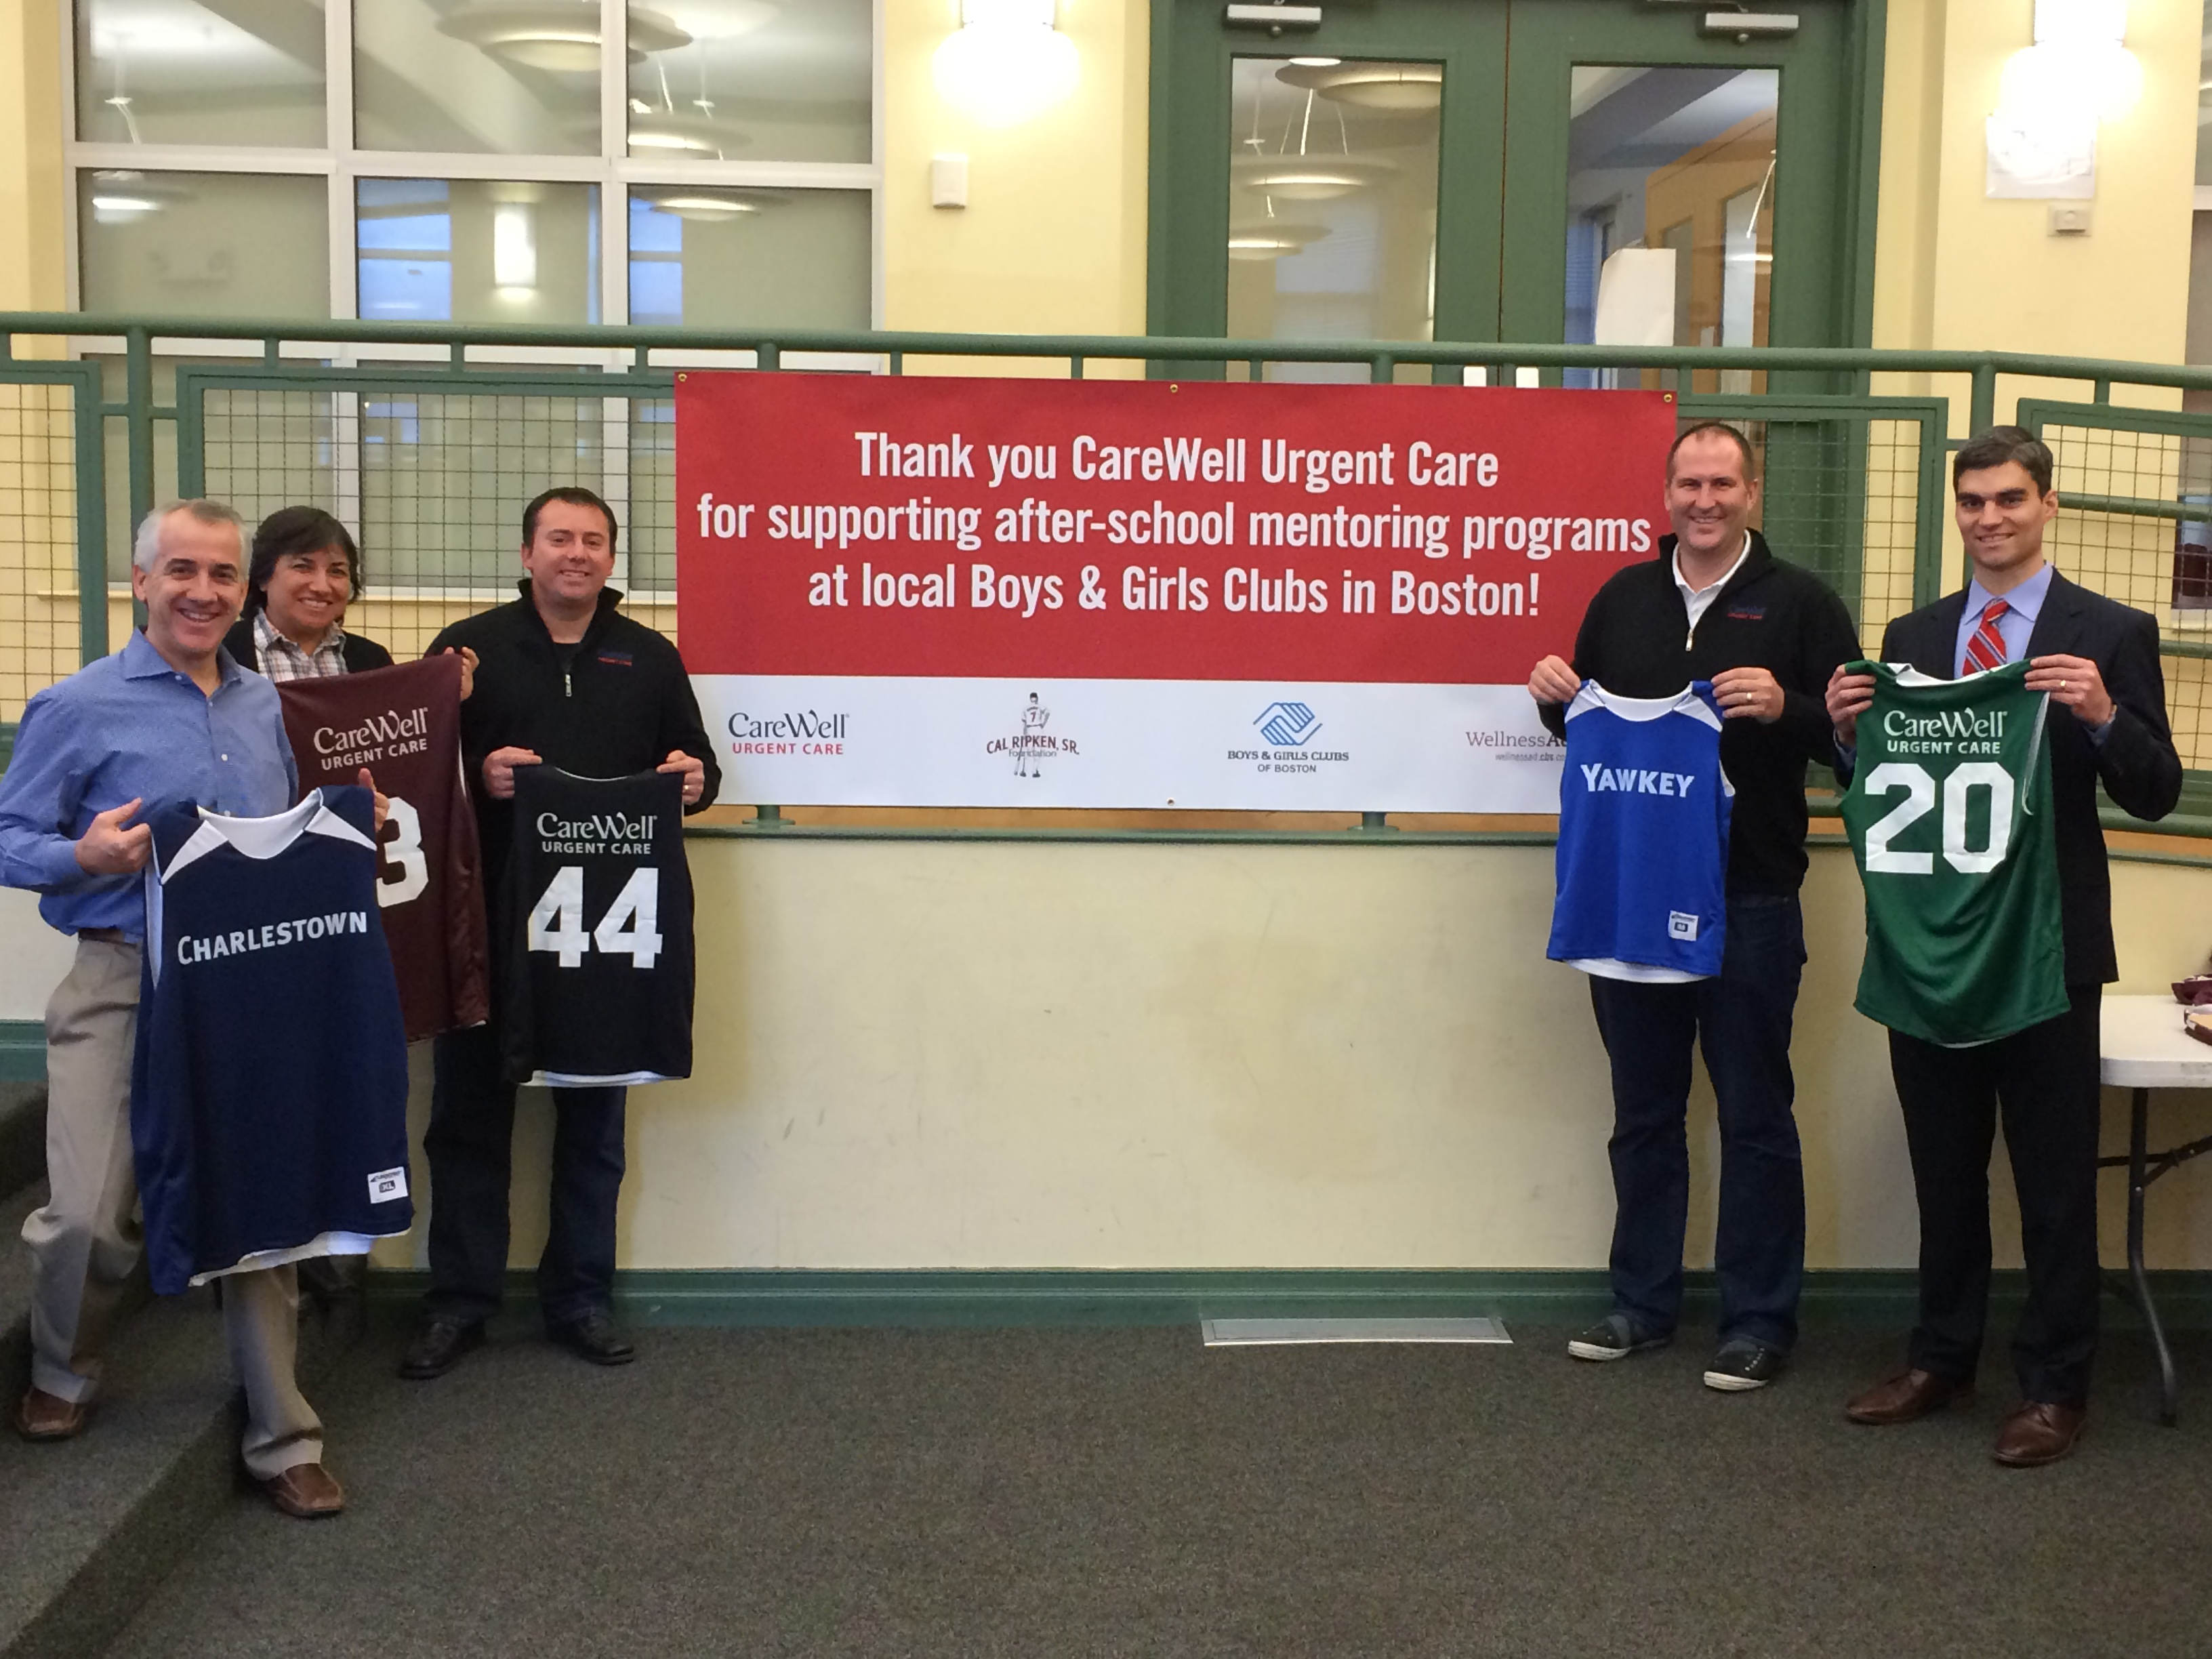 Carewell Urgent Care Supports Youth Sports while